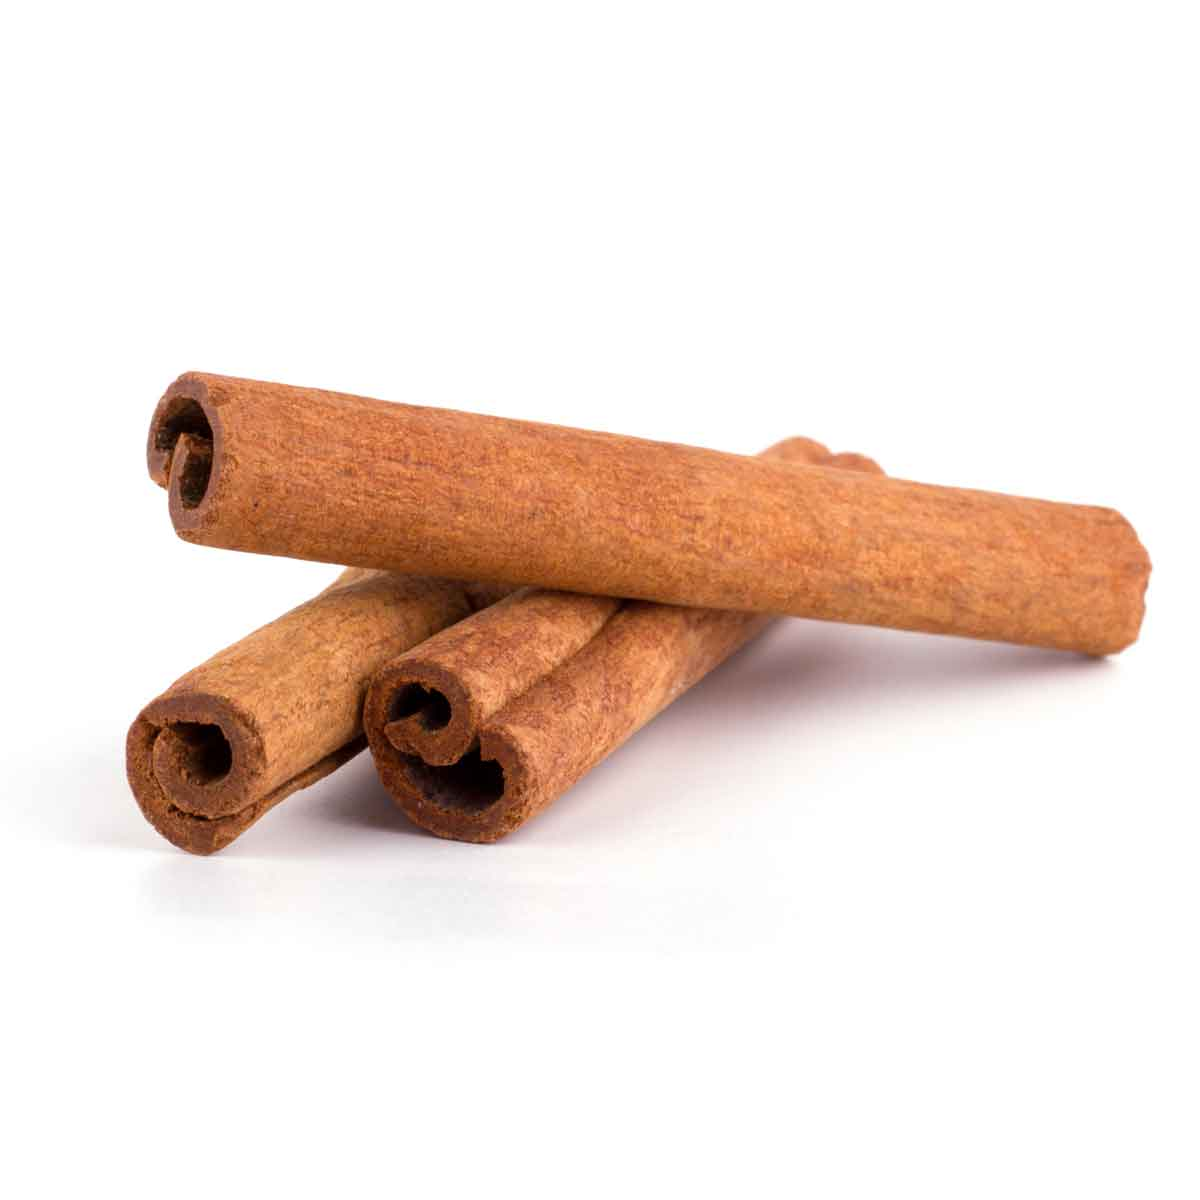 Party contains botanical extracts found in cinnamon, creating a perfect combination of sweet and spice -